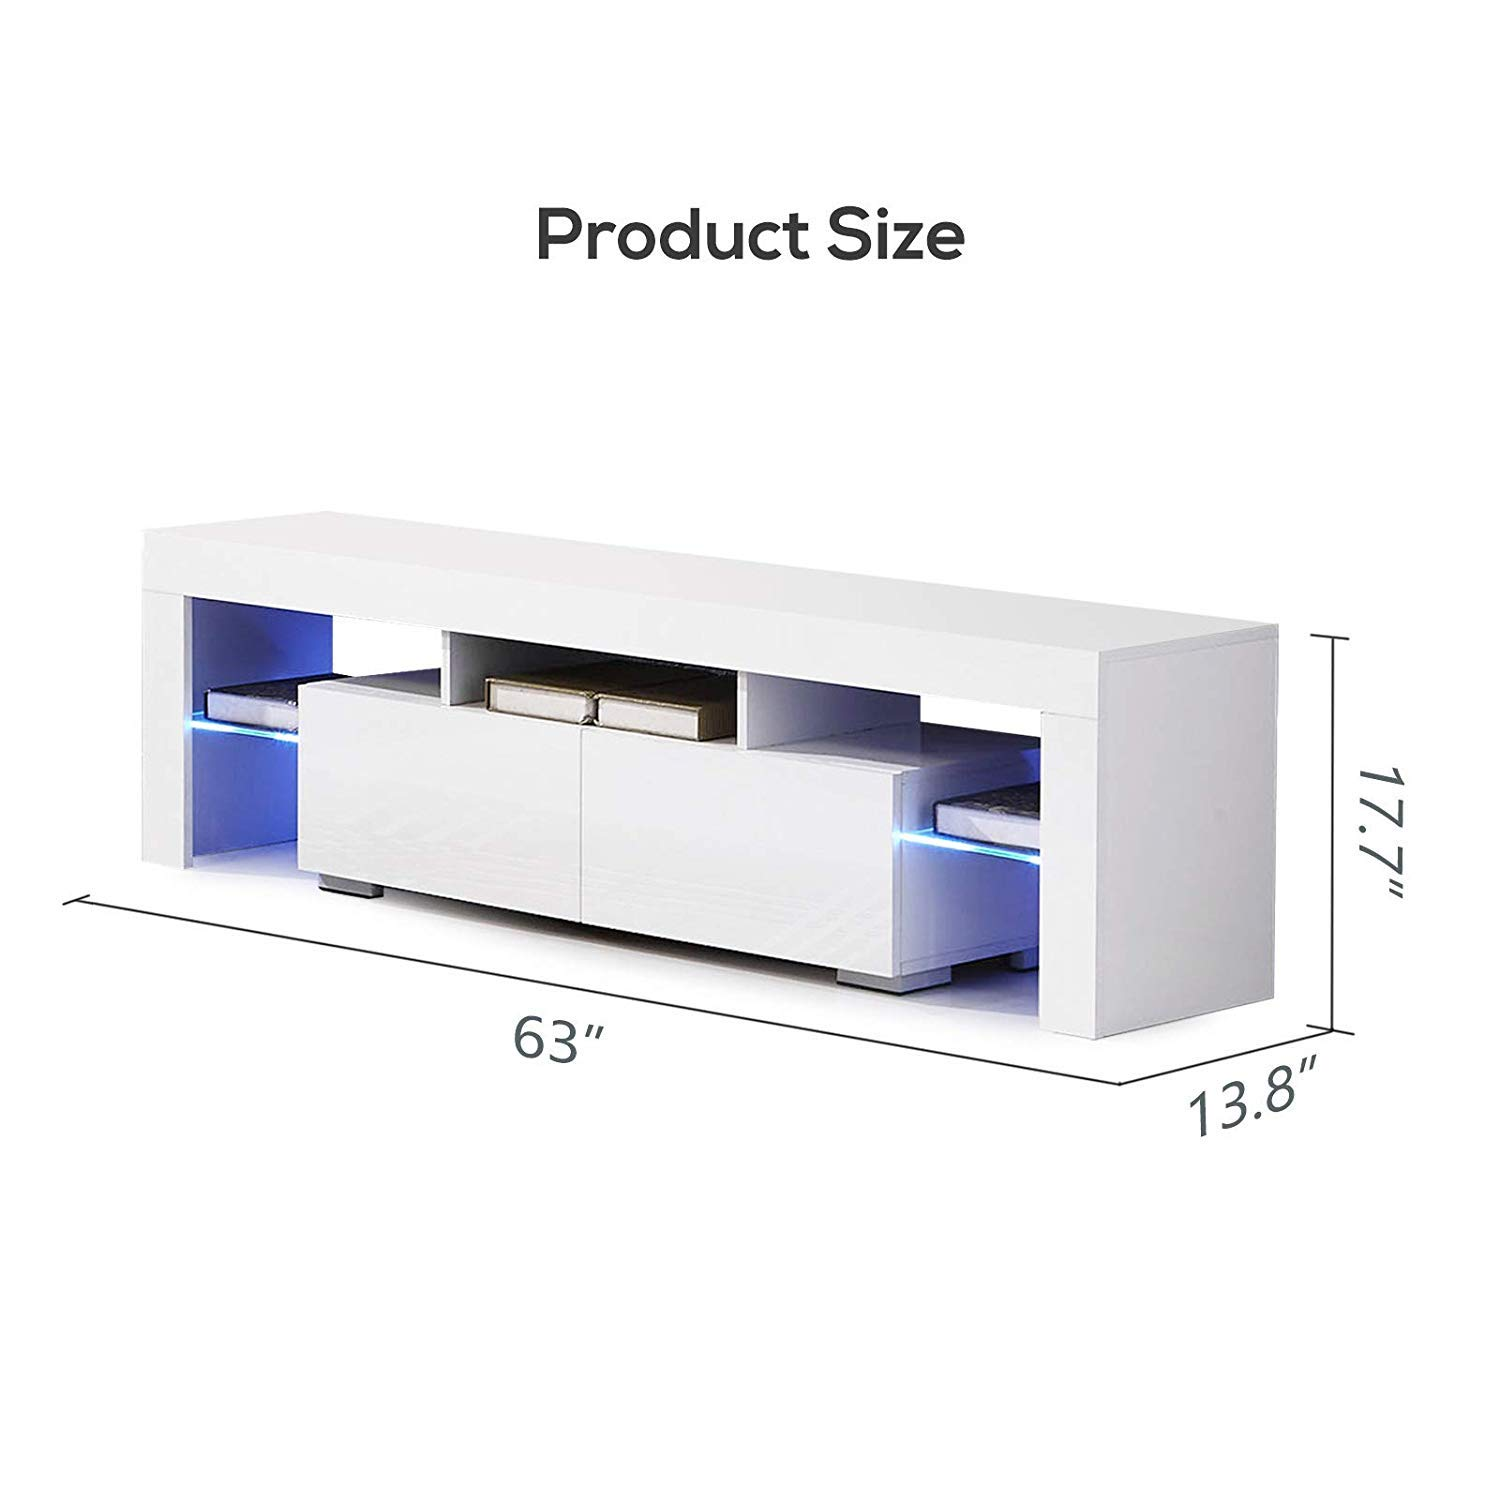 High Gloss TV Stand for 65 Inch TV LED TV Stand with Storage and 2 Drawers Living Room Furniture White mecor Modern White TV Stand with LED Lights